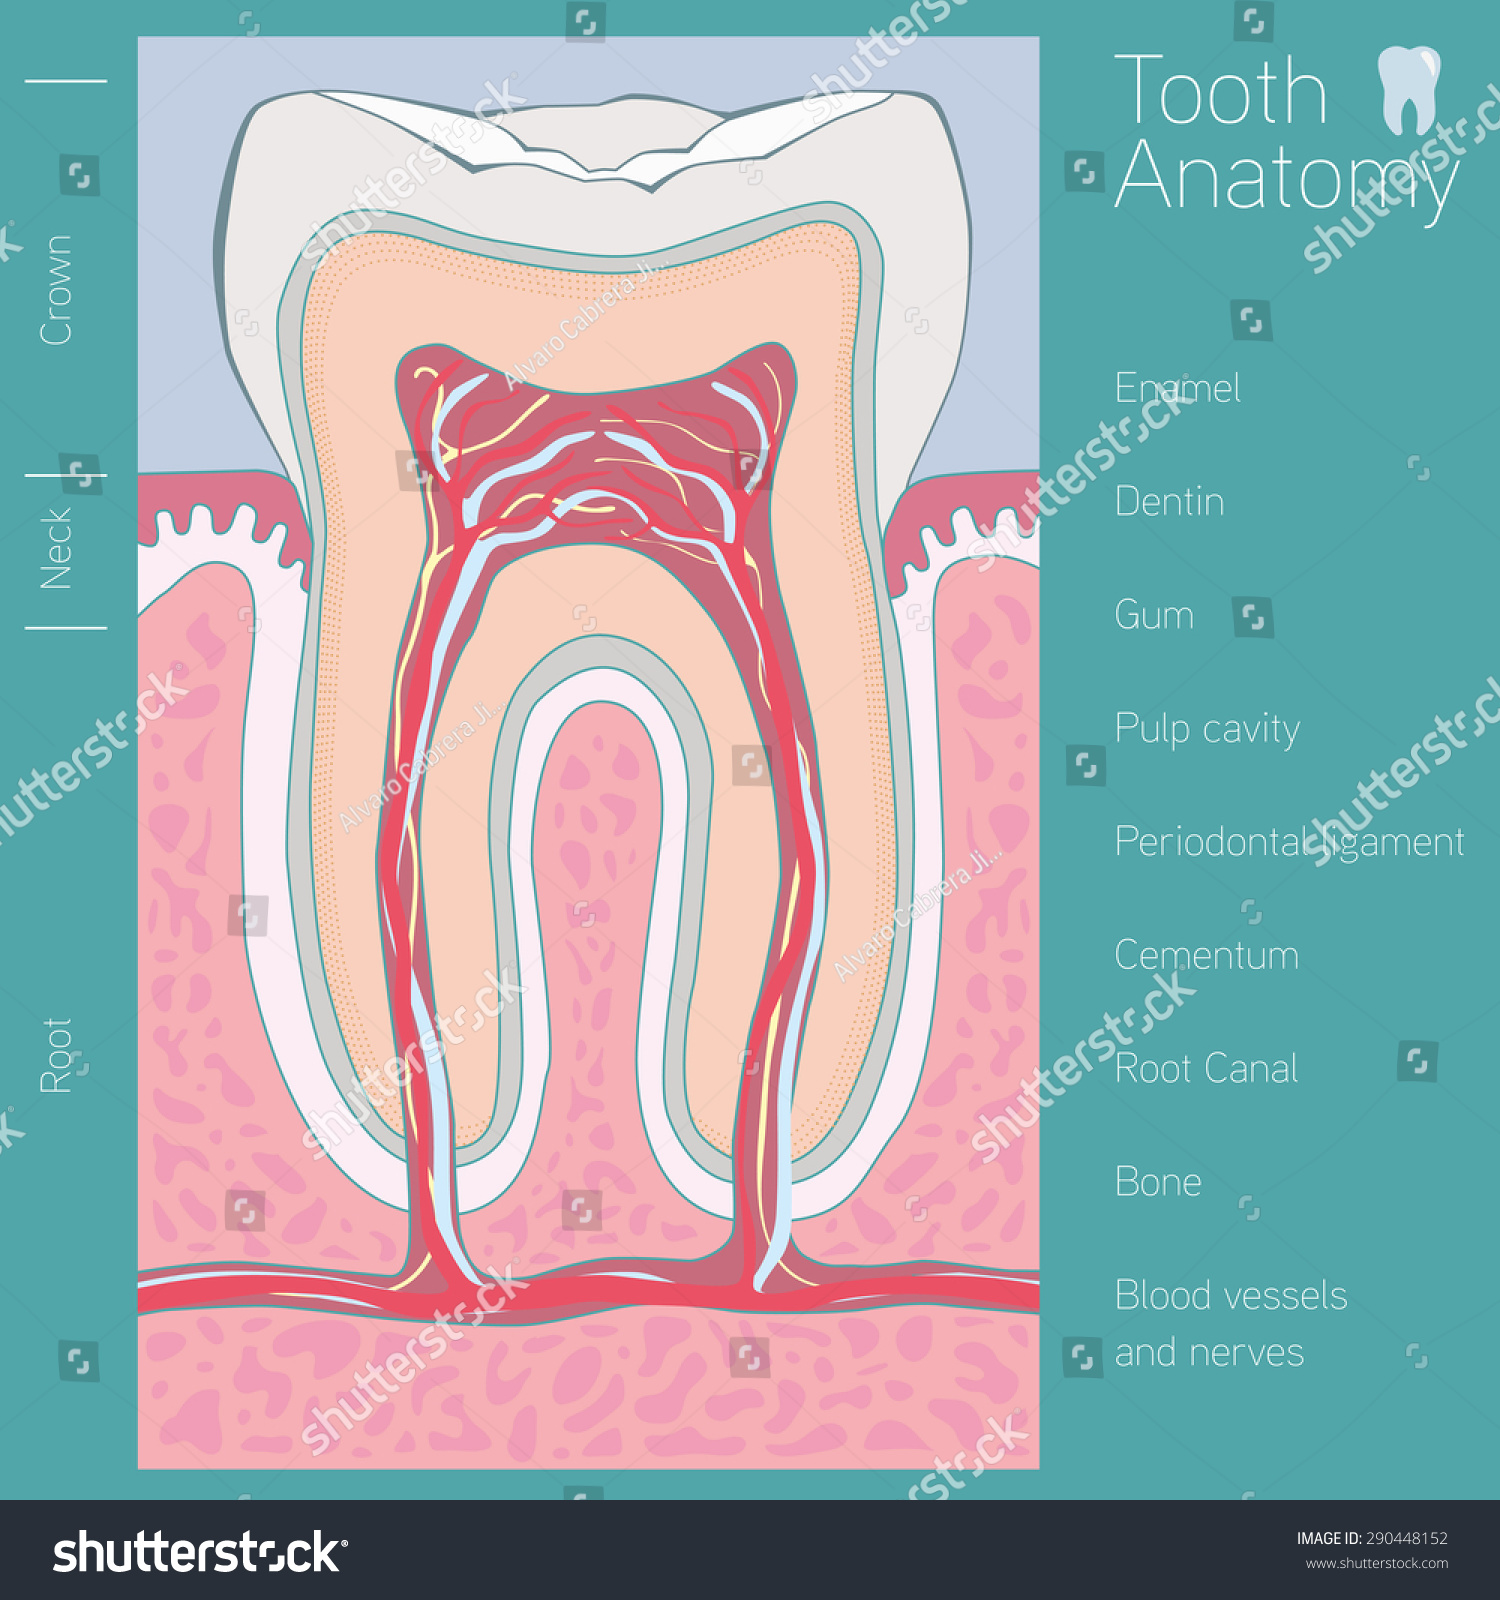 Tooth Medical Anatomy Words Stock Vector 290448152 - Shutterstock